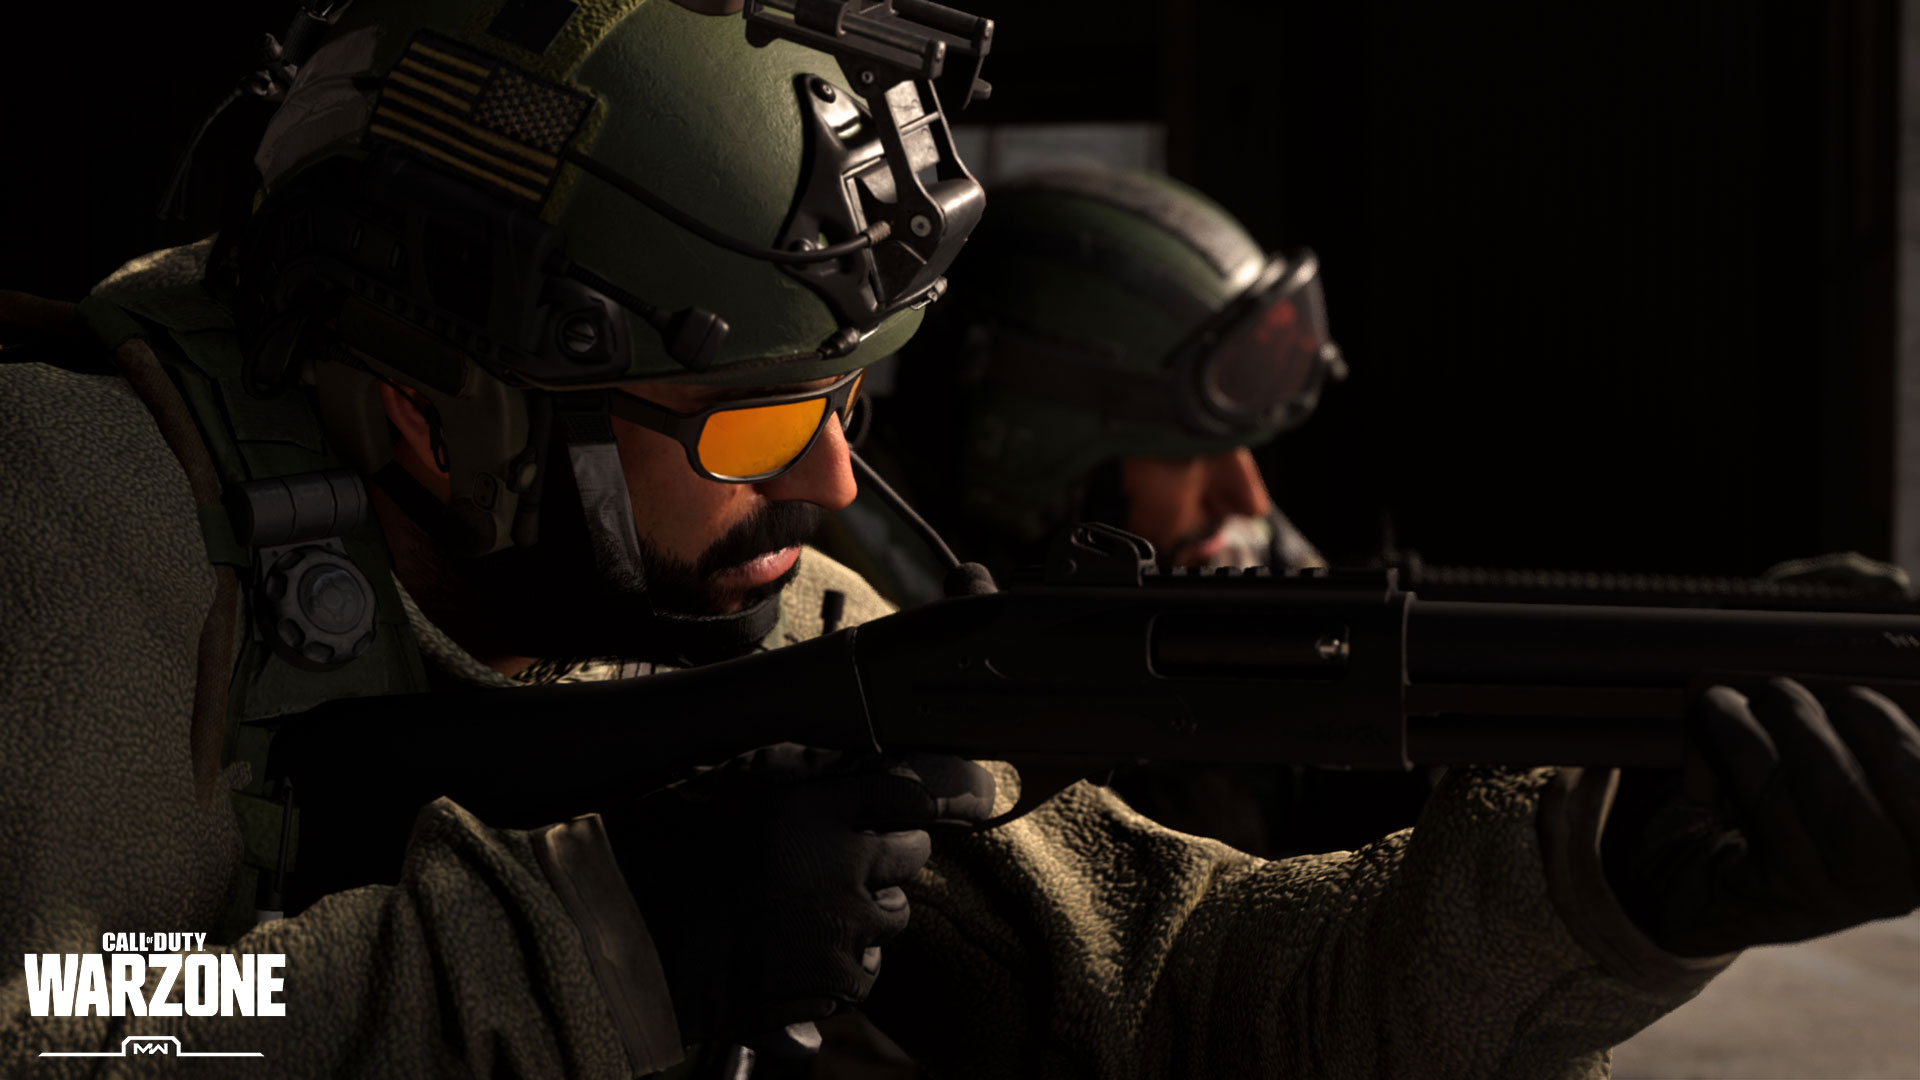 Free-to-Play Call of Duty®: Warzone is Live and Available for Everyone to Download NOW! - Image 6